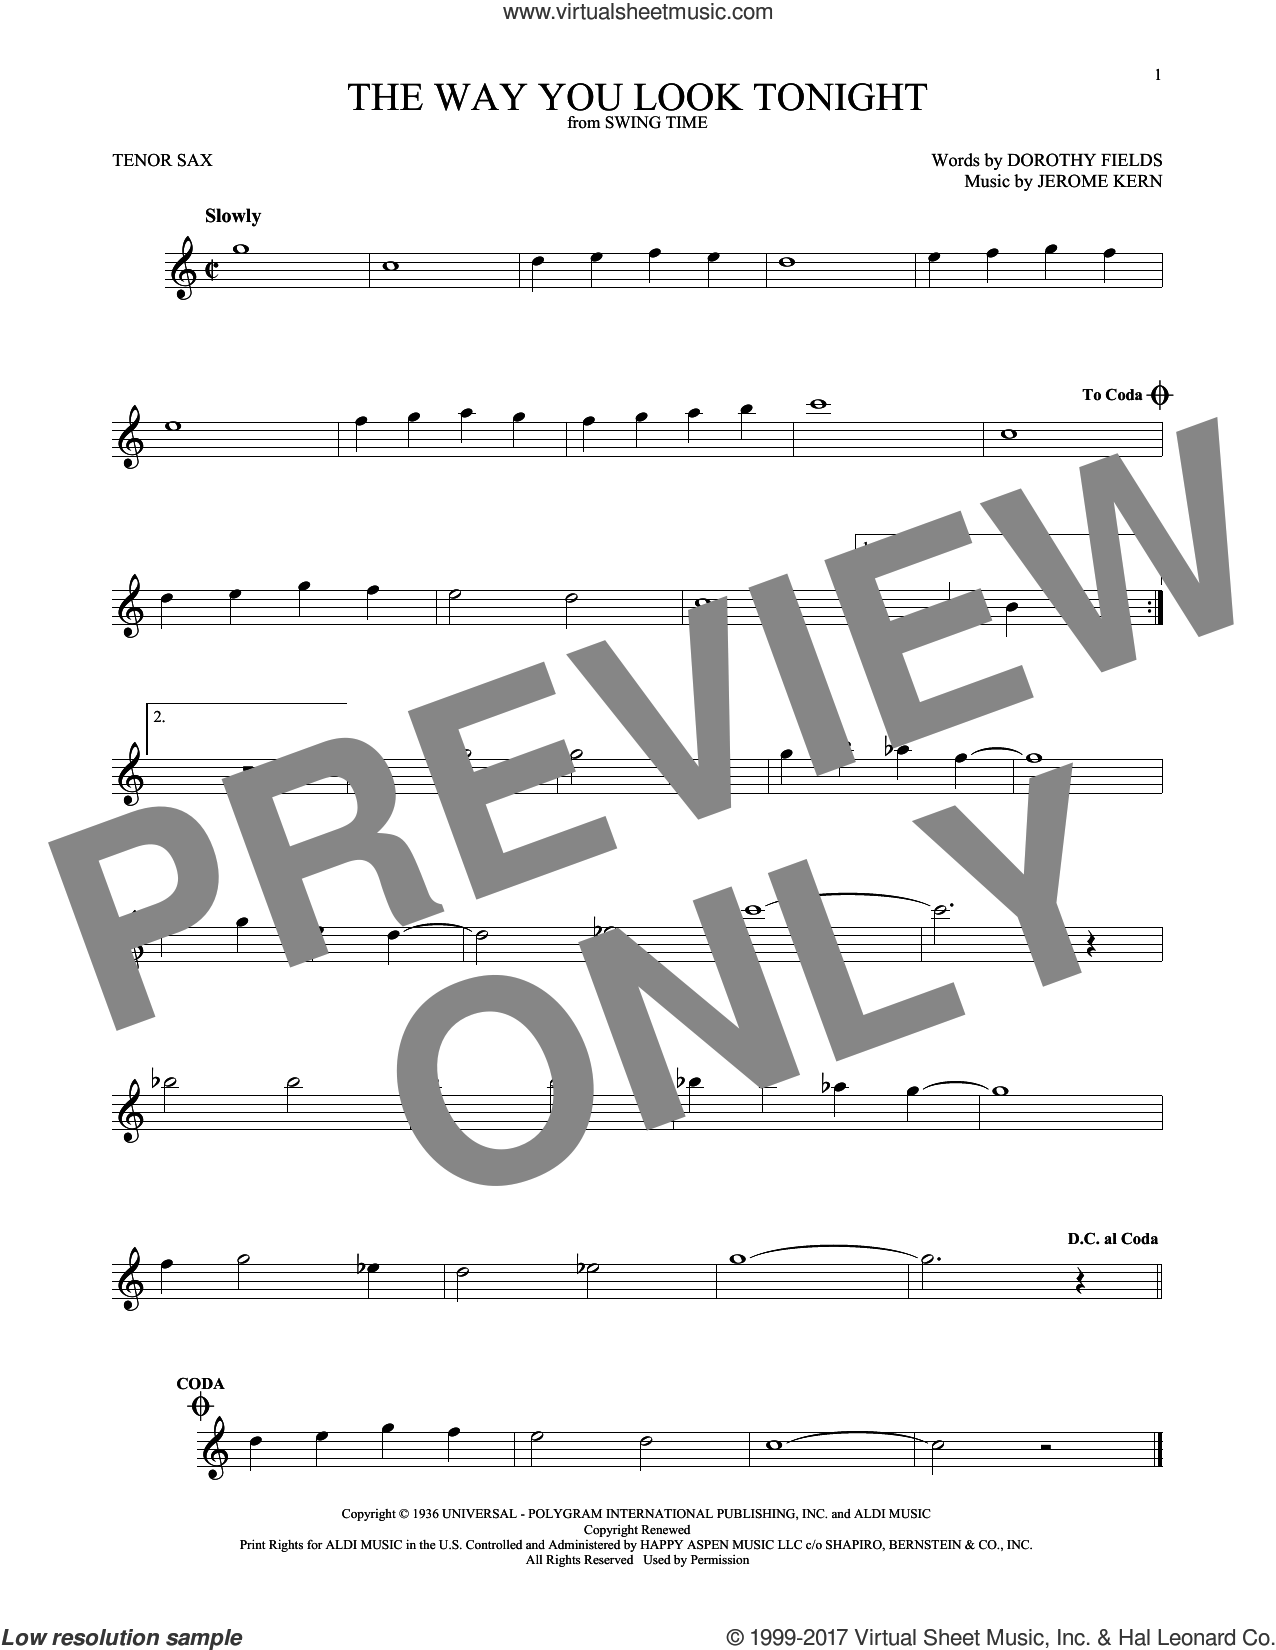 The Way You Look Tonight sheet music for tenor saxophone solo by Jerome Kern and Dorothy Fields, intermediate skill level